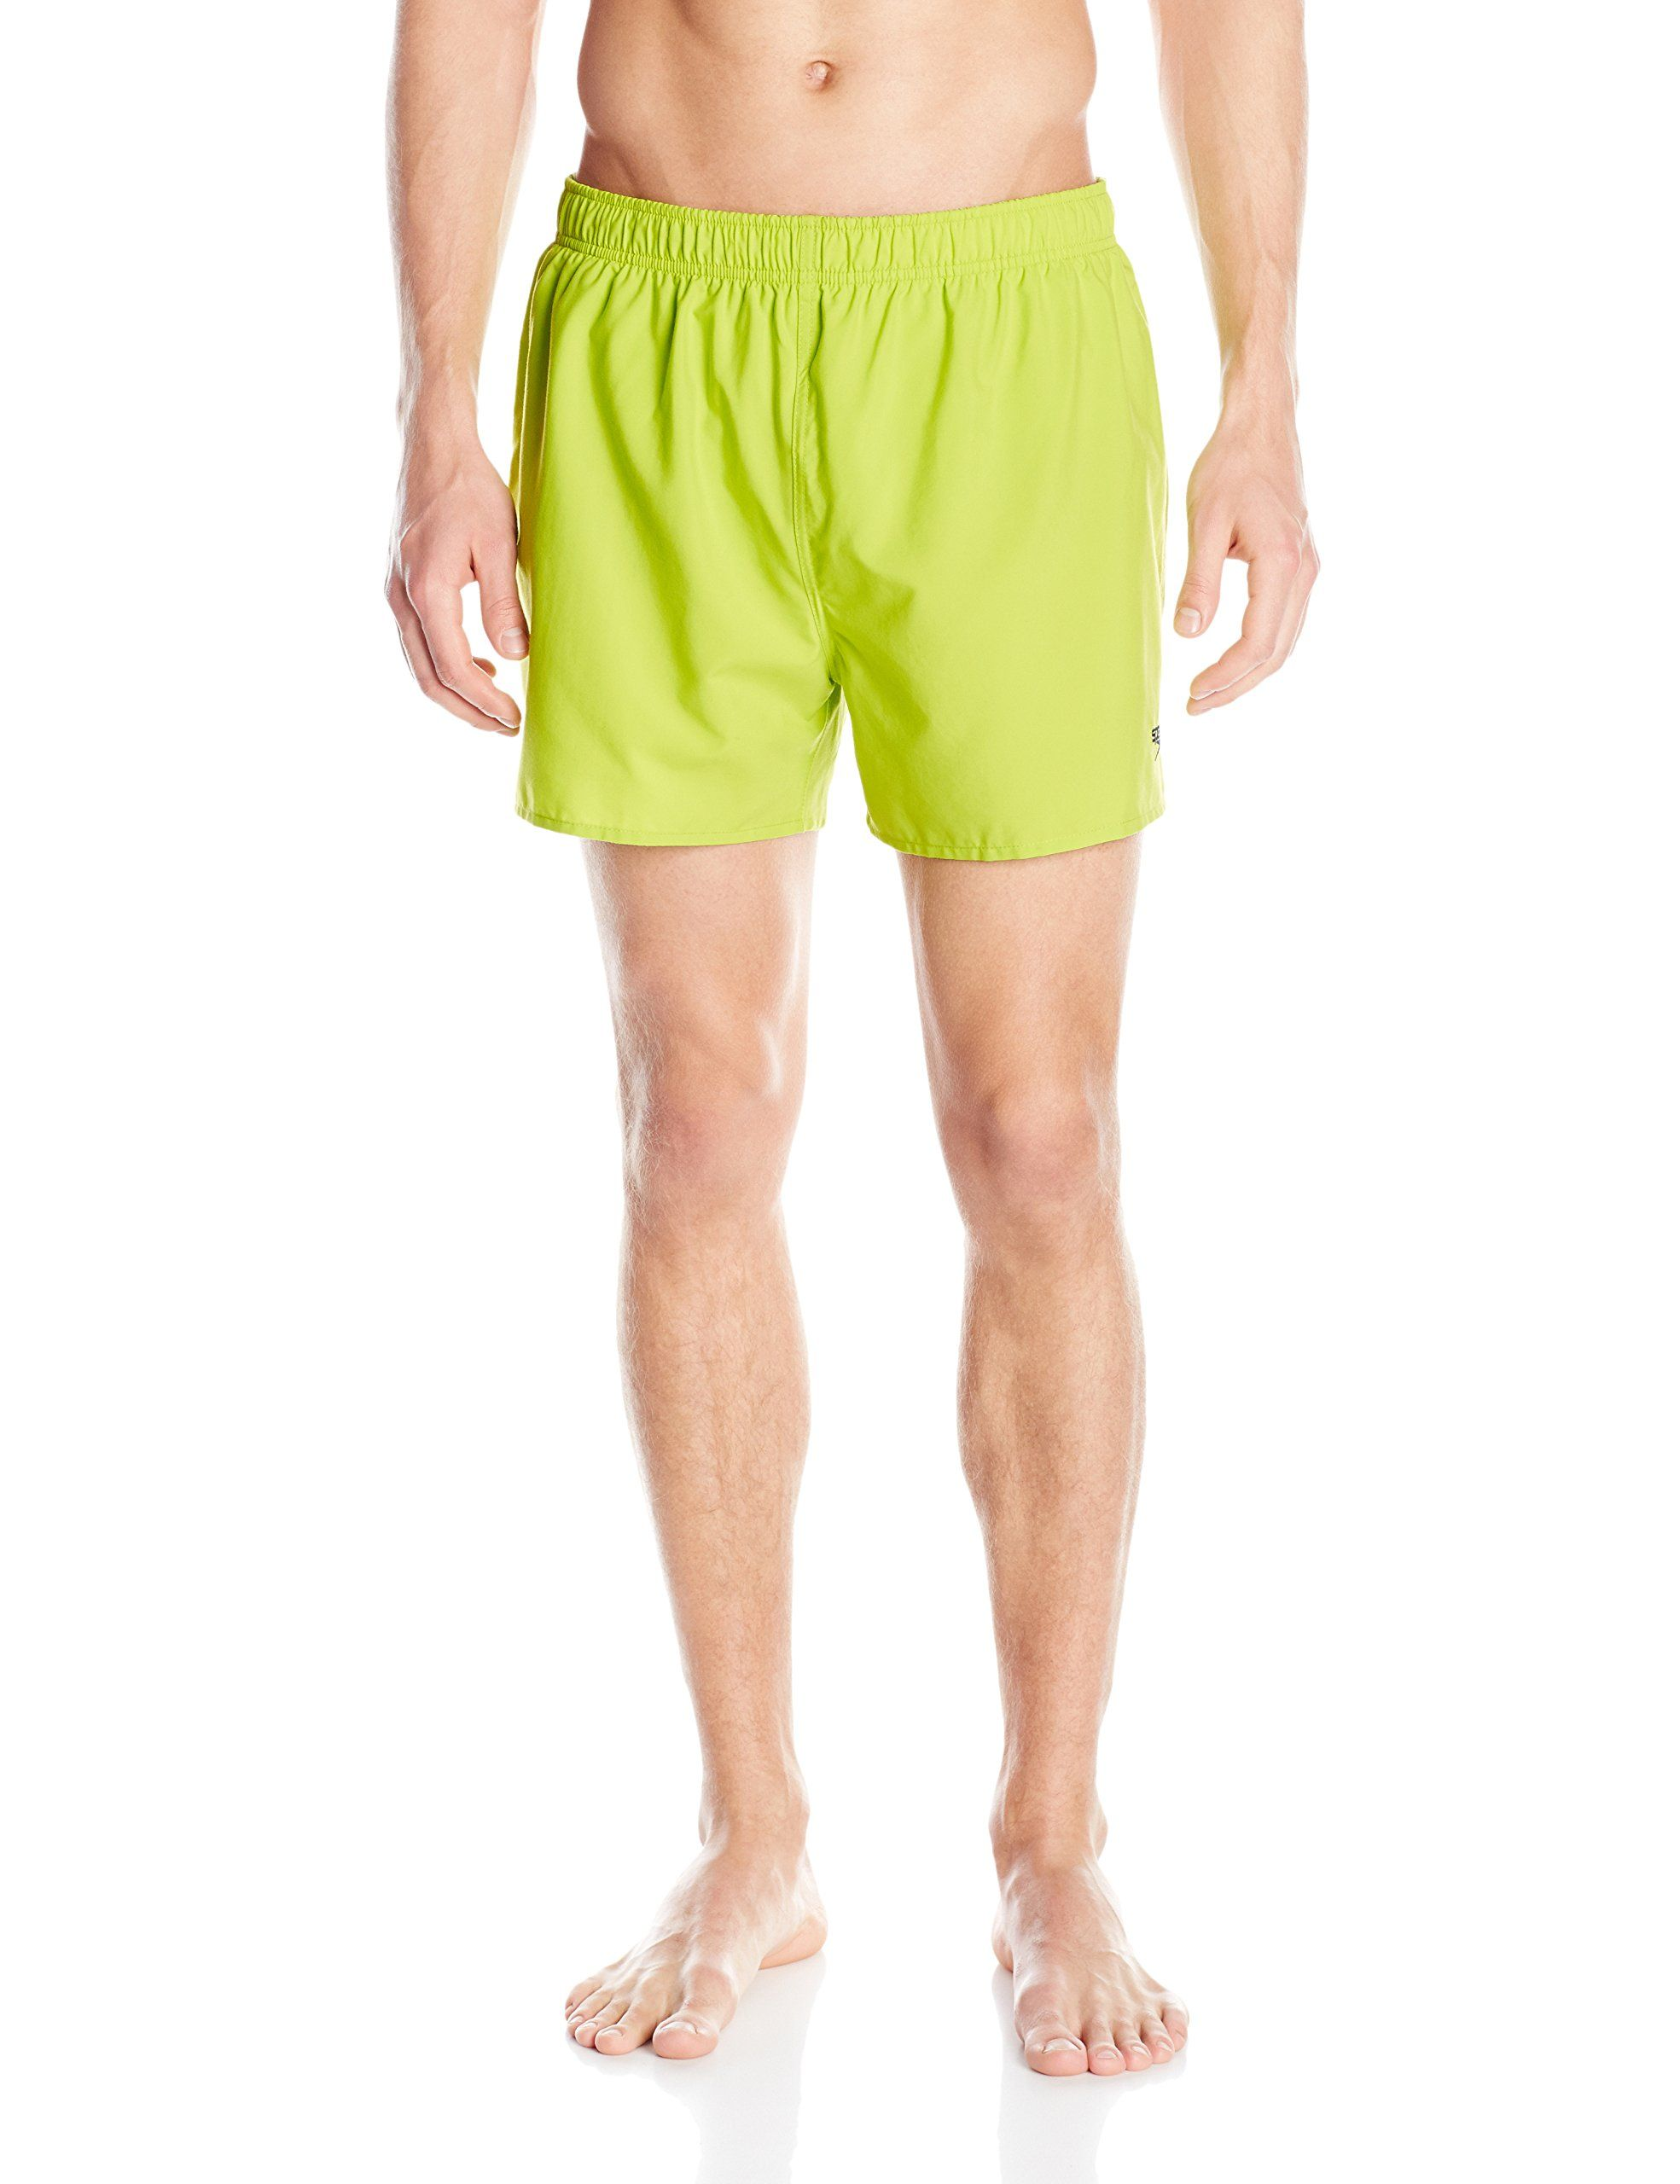 f7693909e6 Speedo Men's Surf Runner Volley 14 Inch Watershorts, Citrus, X-Large. Solid